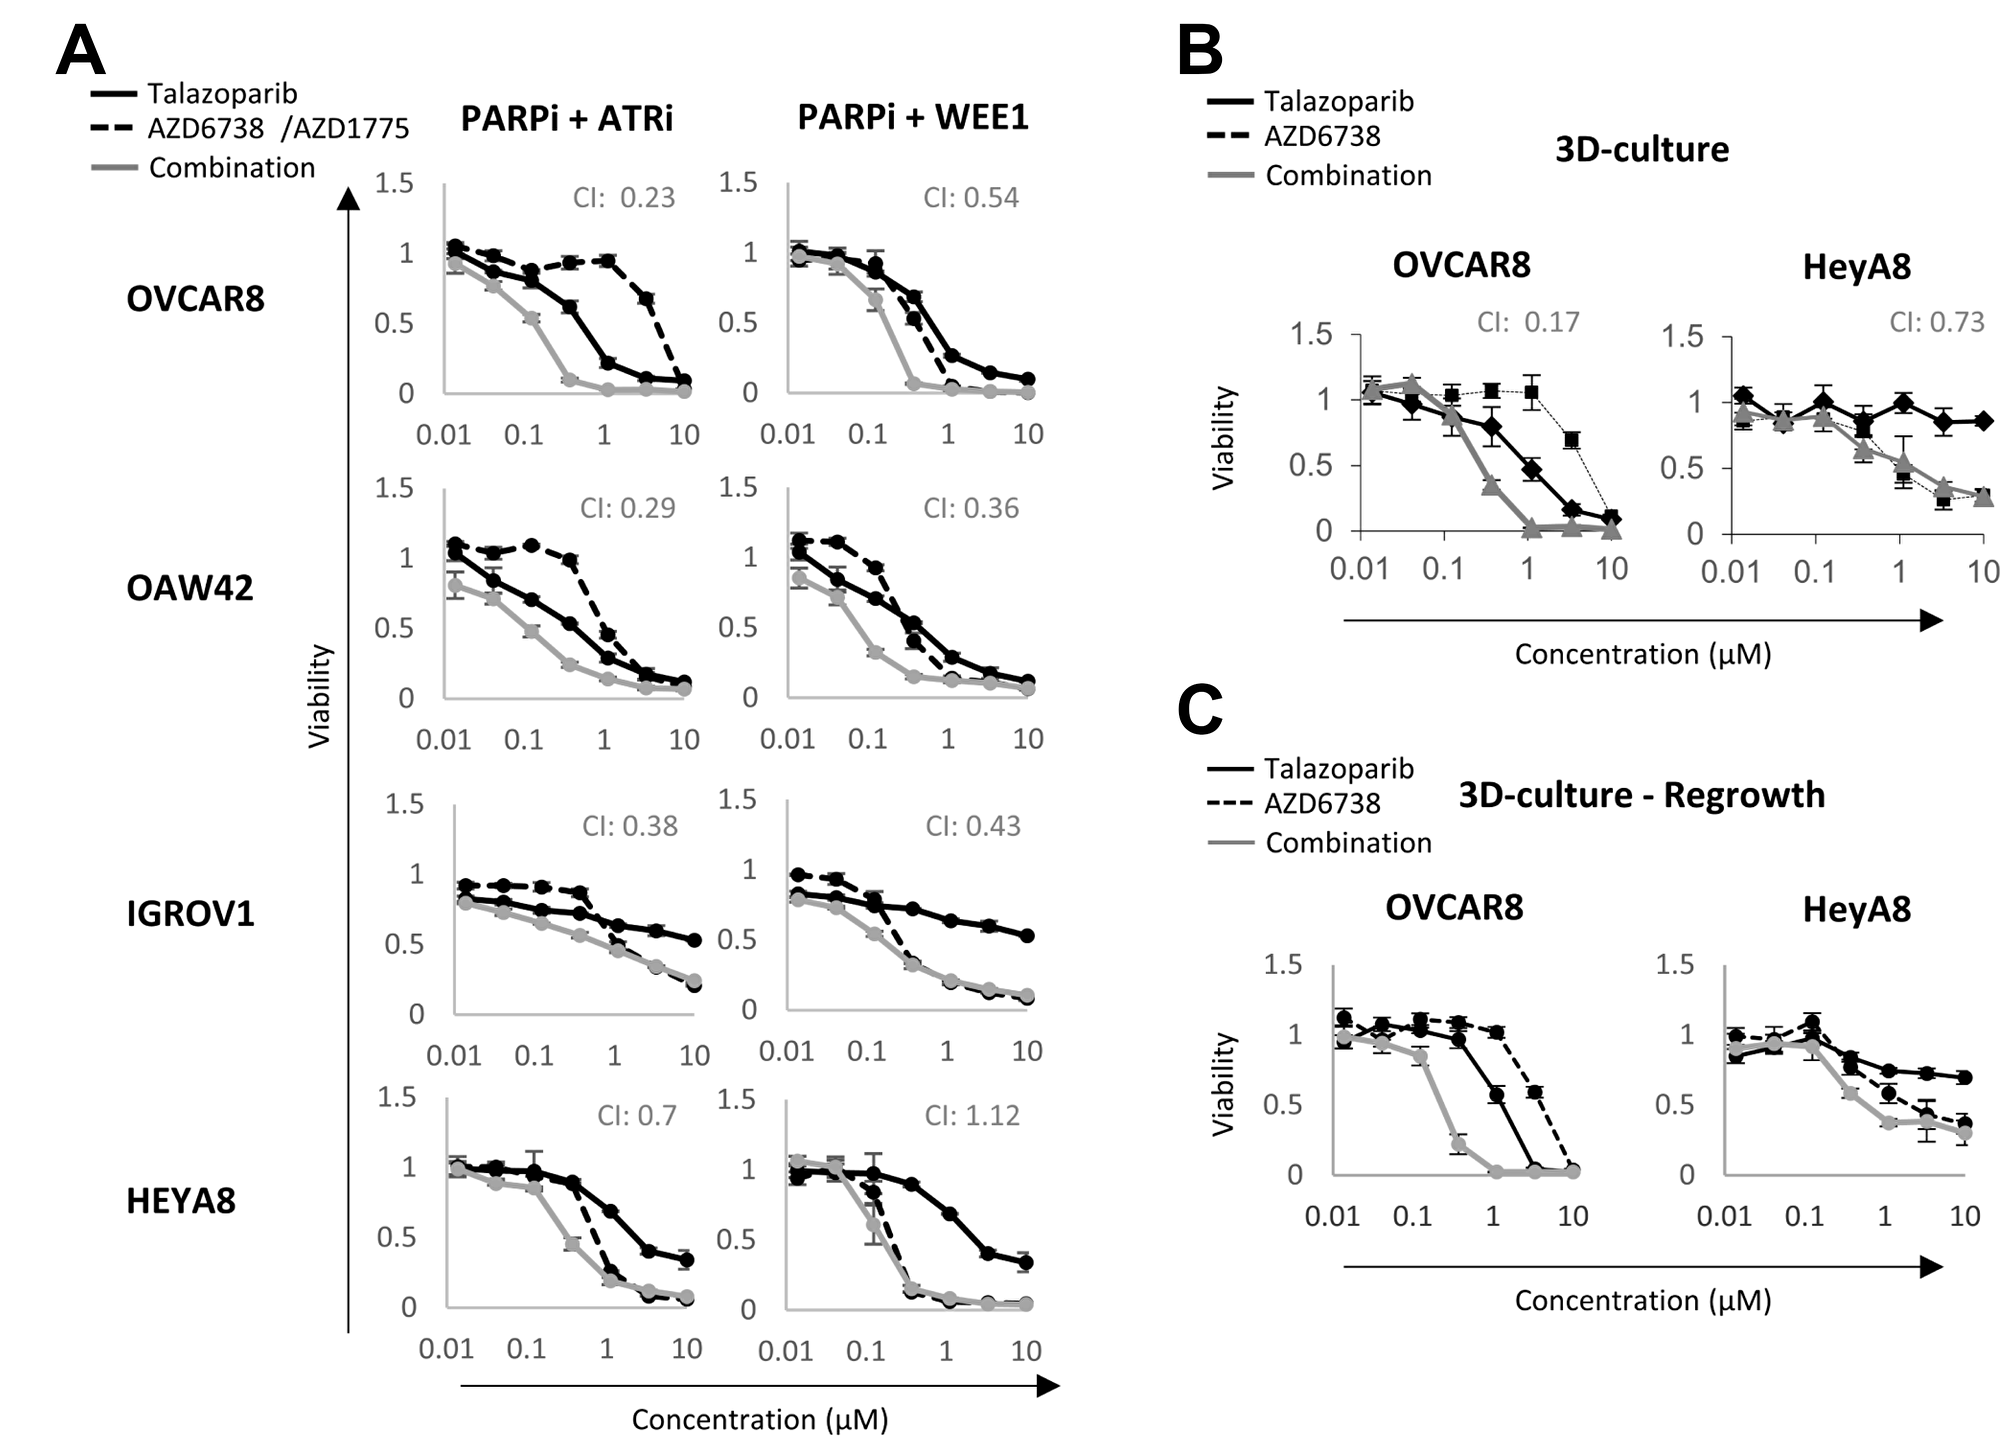 Synergism between PARP and DNA damage checkpoint inhibitors.